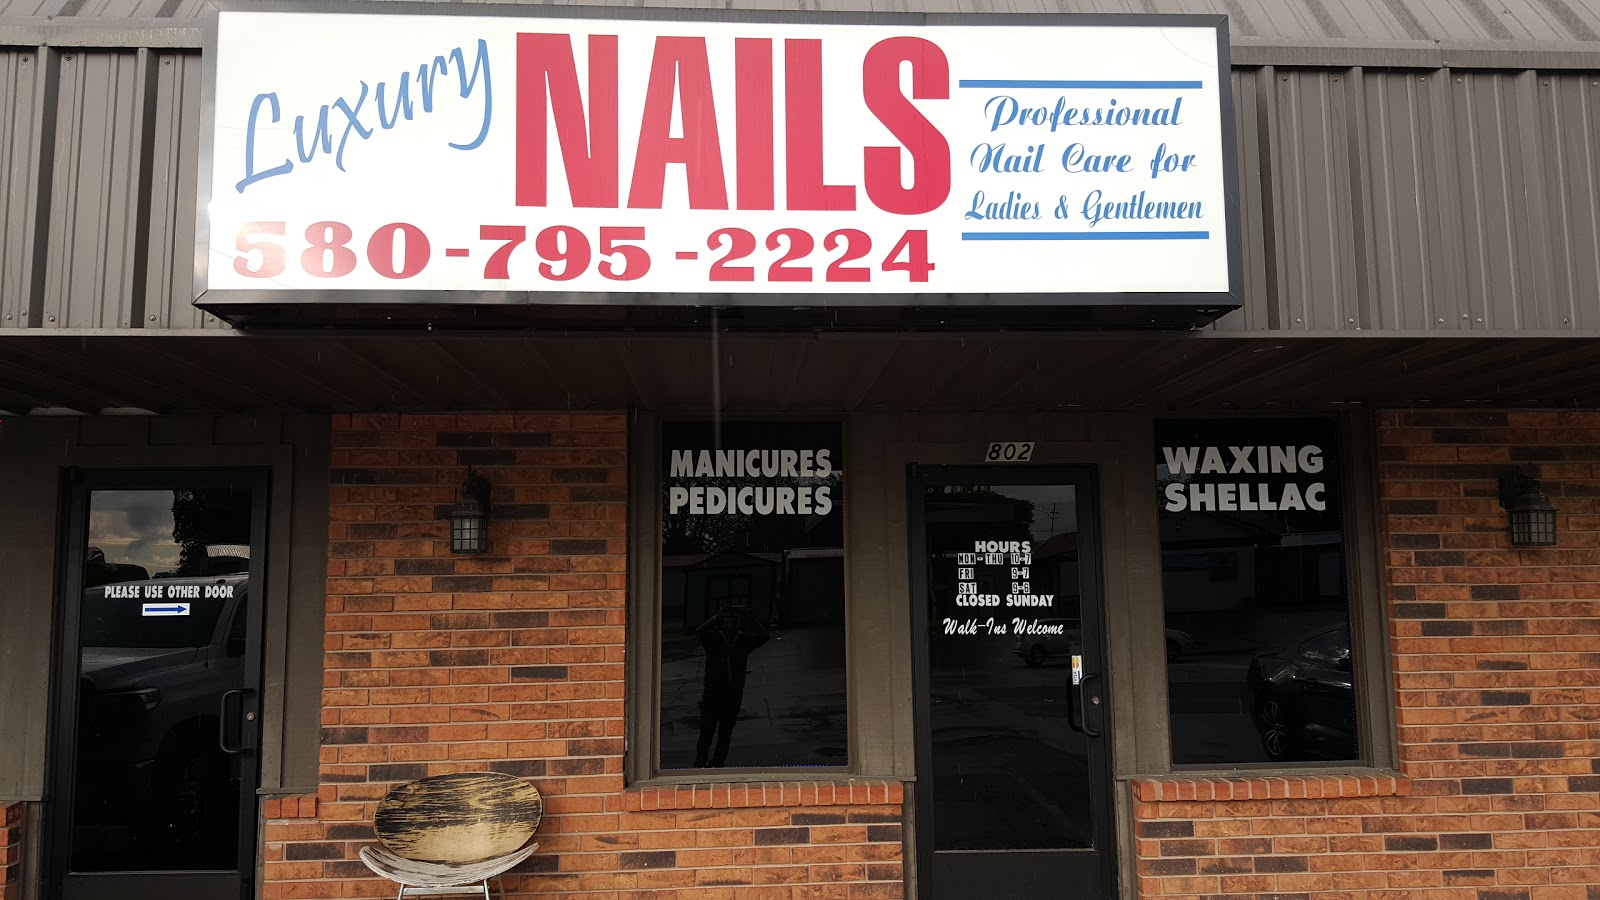 Luxury Nails, 802 North 1st Street, Madill, Reviews and Appointments ...